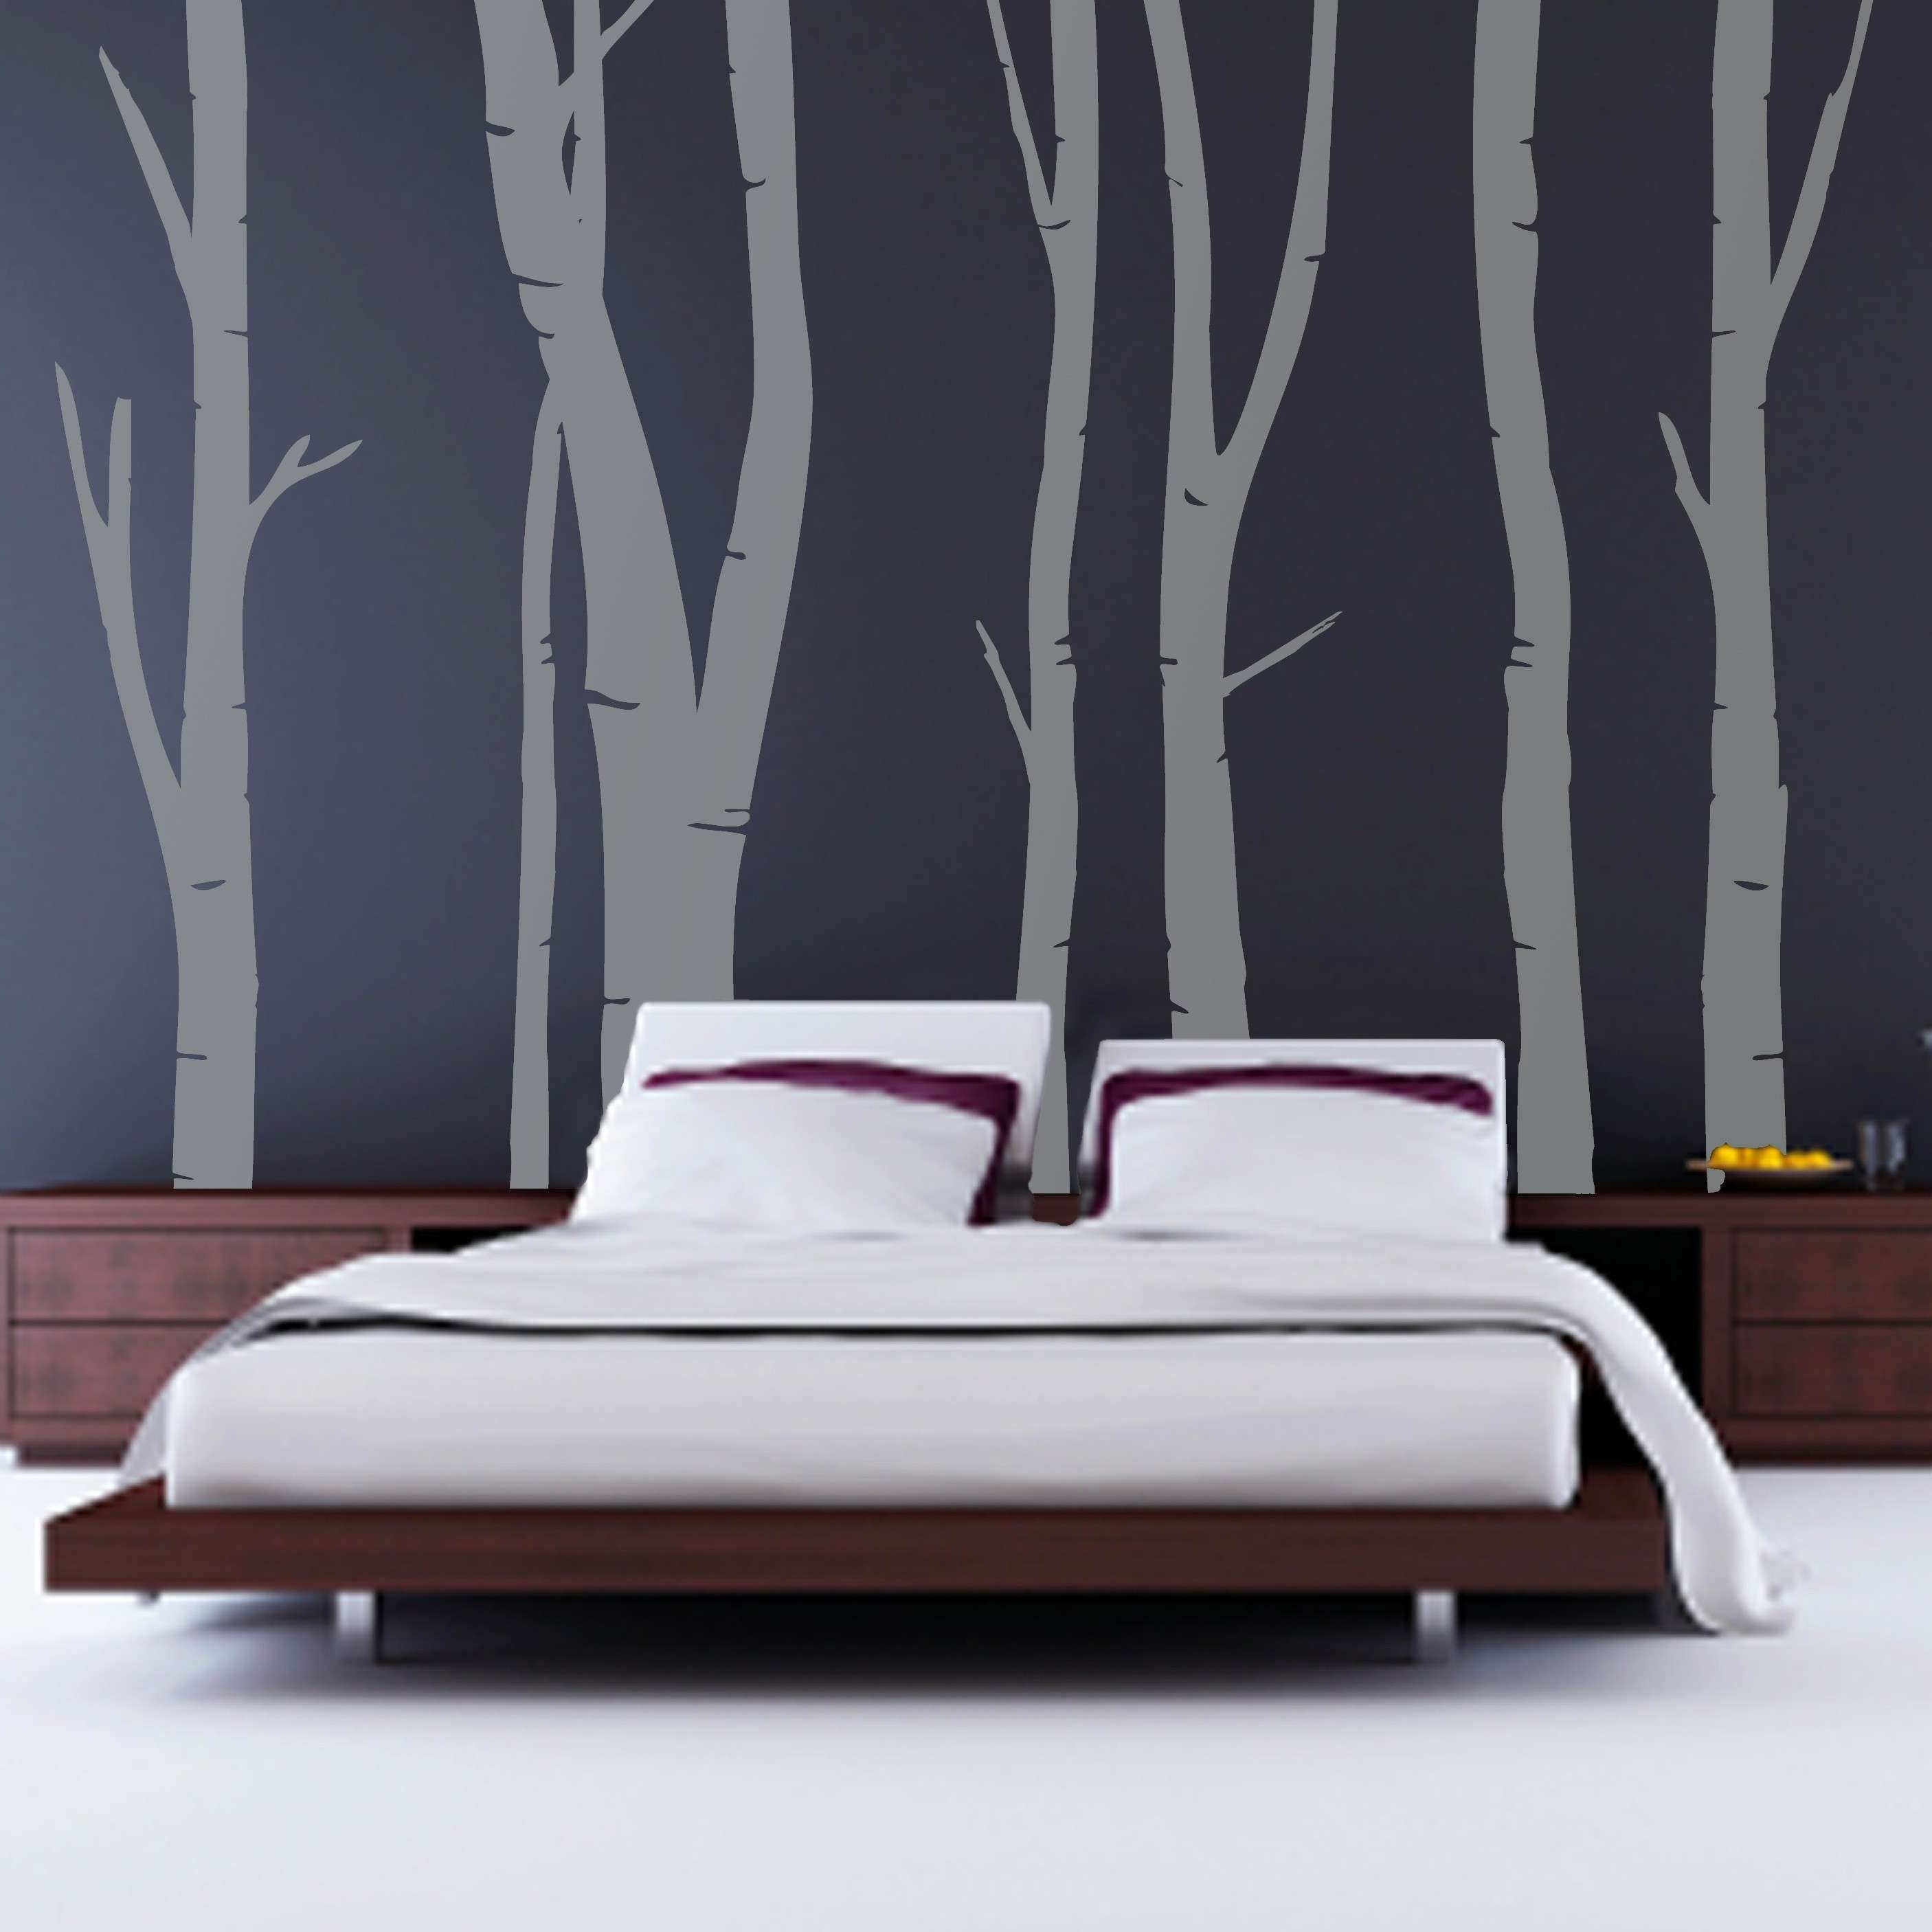 Diy Decor Ideas for Bedroom Best Wall Decals for Bedroom Unique 1